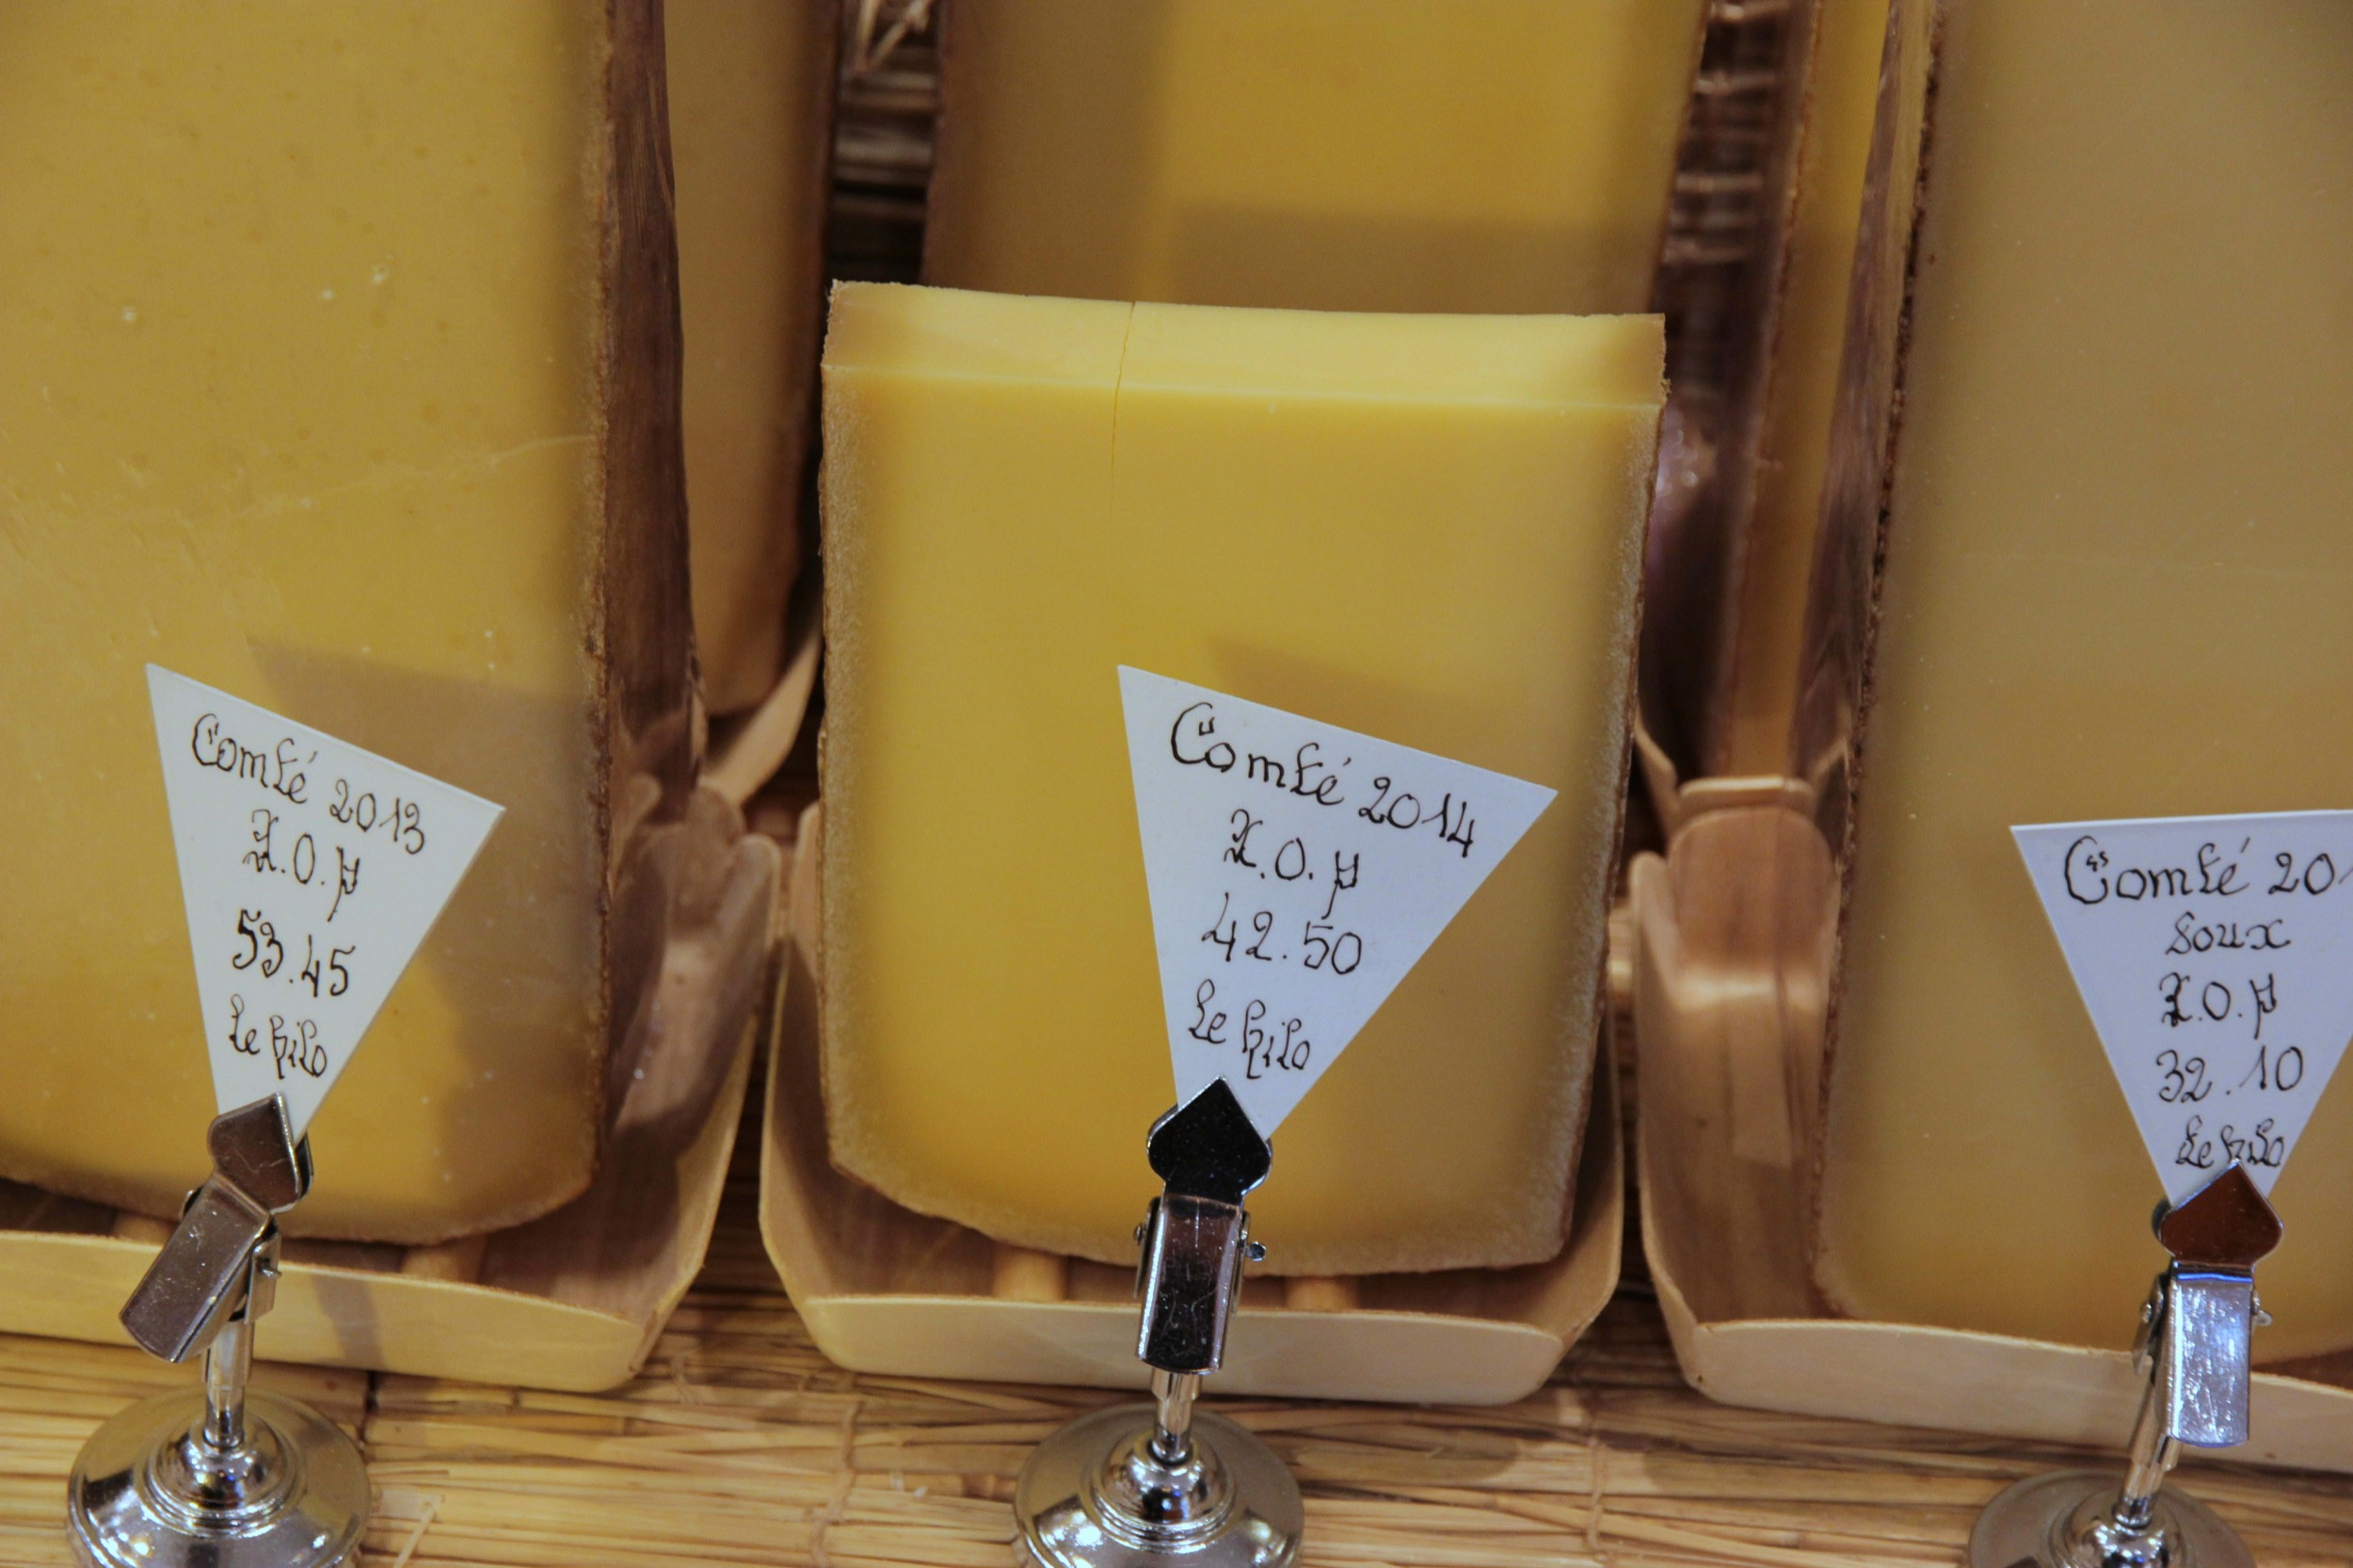 The 2014 comté was excellent, and even better when paired with a wine from the Jura region.